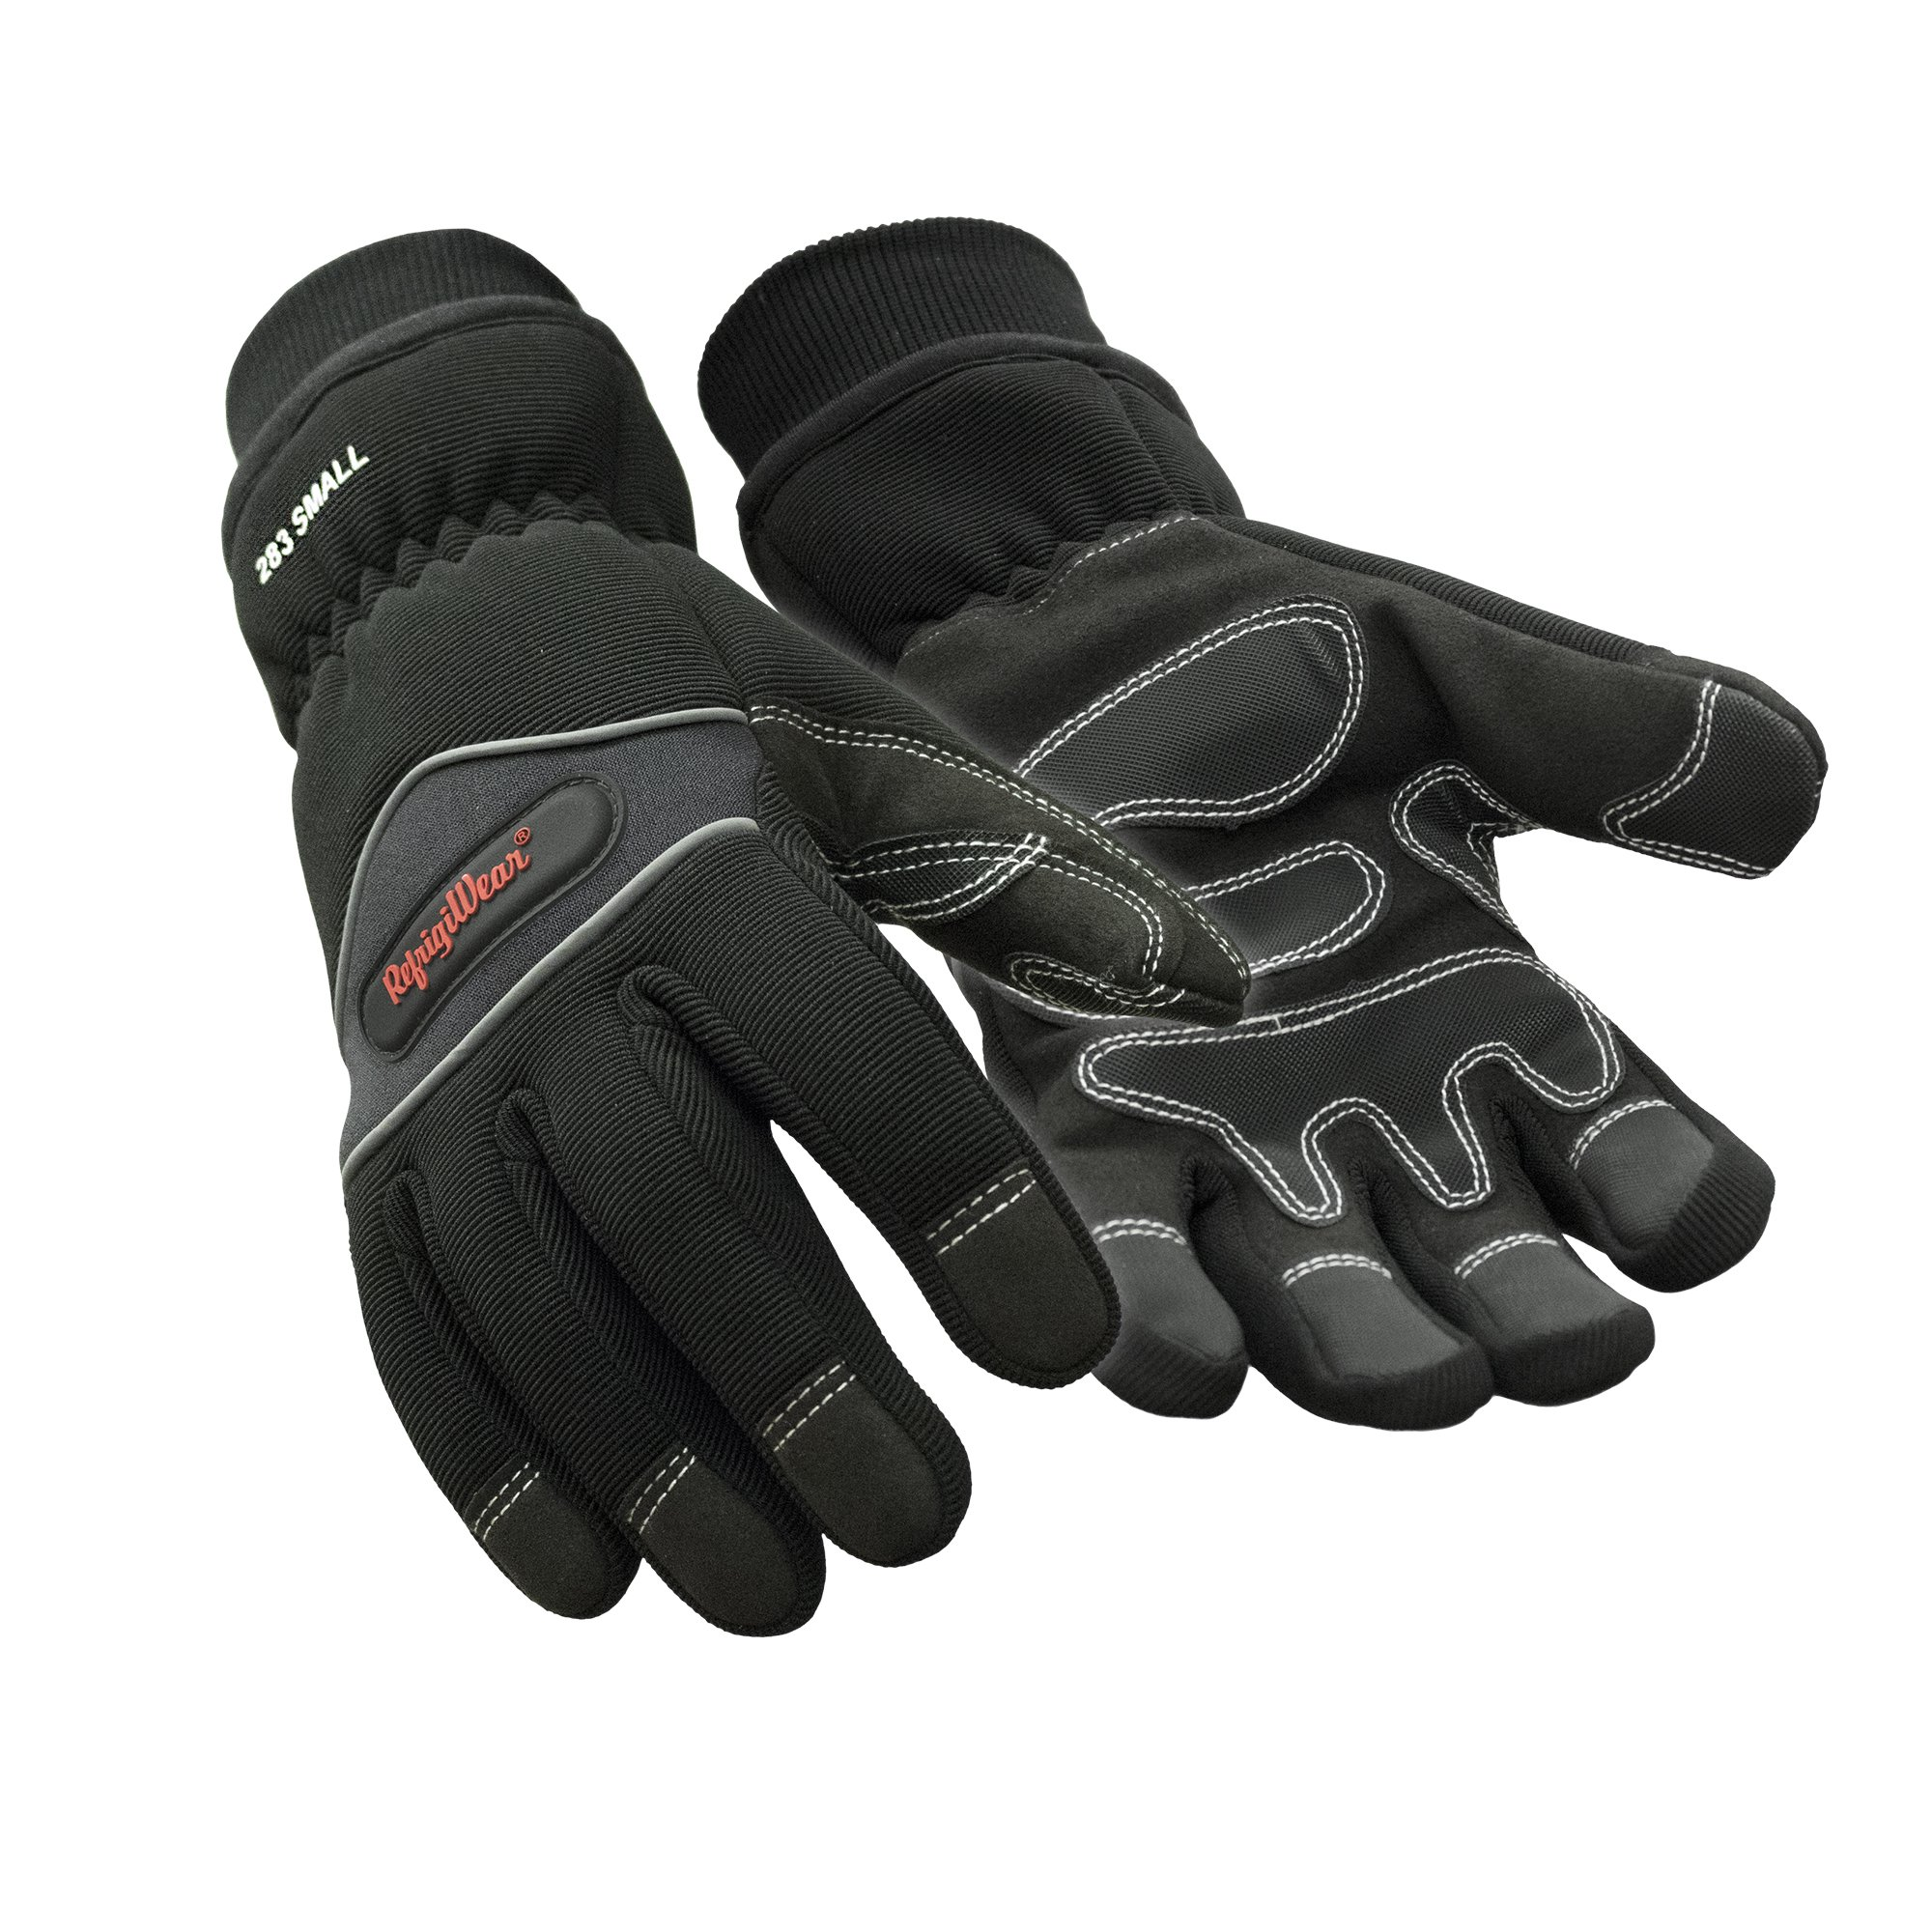 RefrigiWear Waterproof Insulated High Dexterity Gloves (Black, Large)